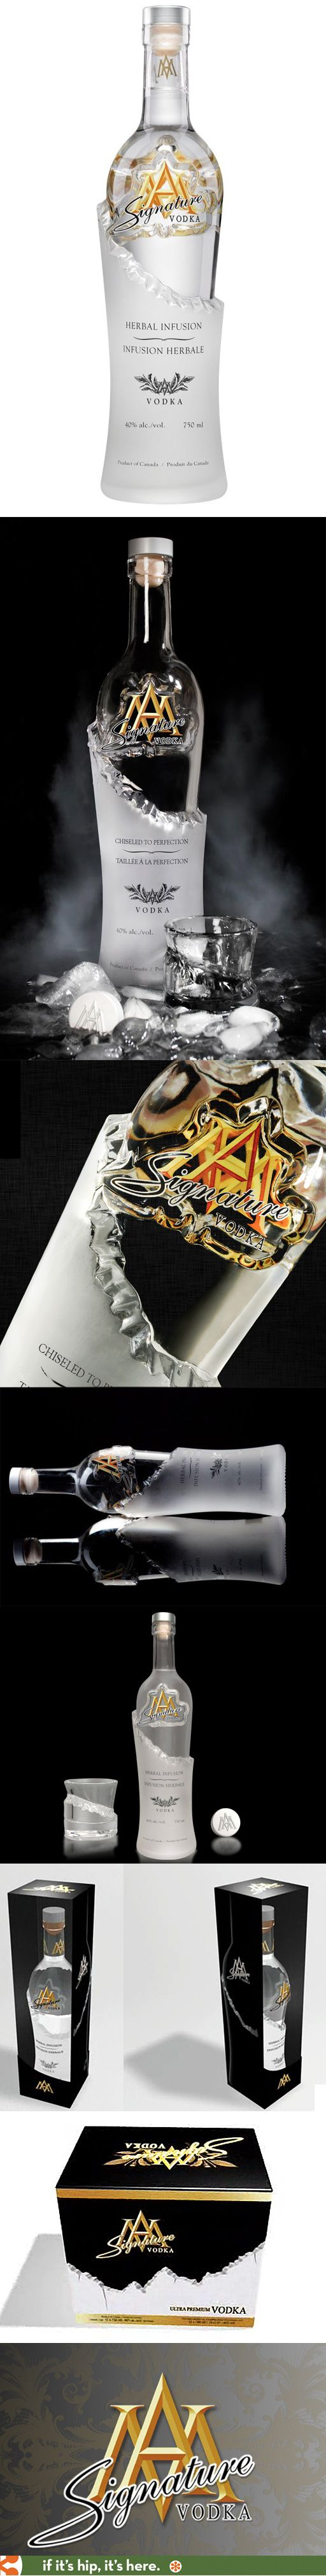 Signature Vodka (herbal-infused) in an unusual chiseled bottle design.